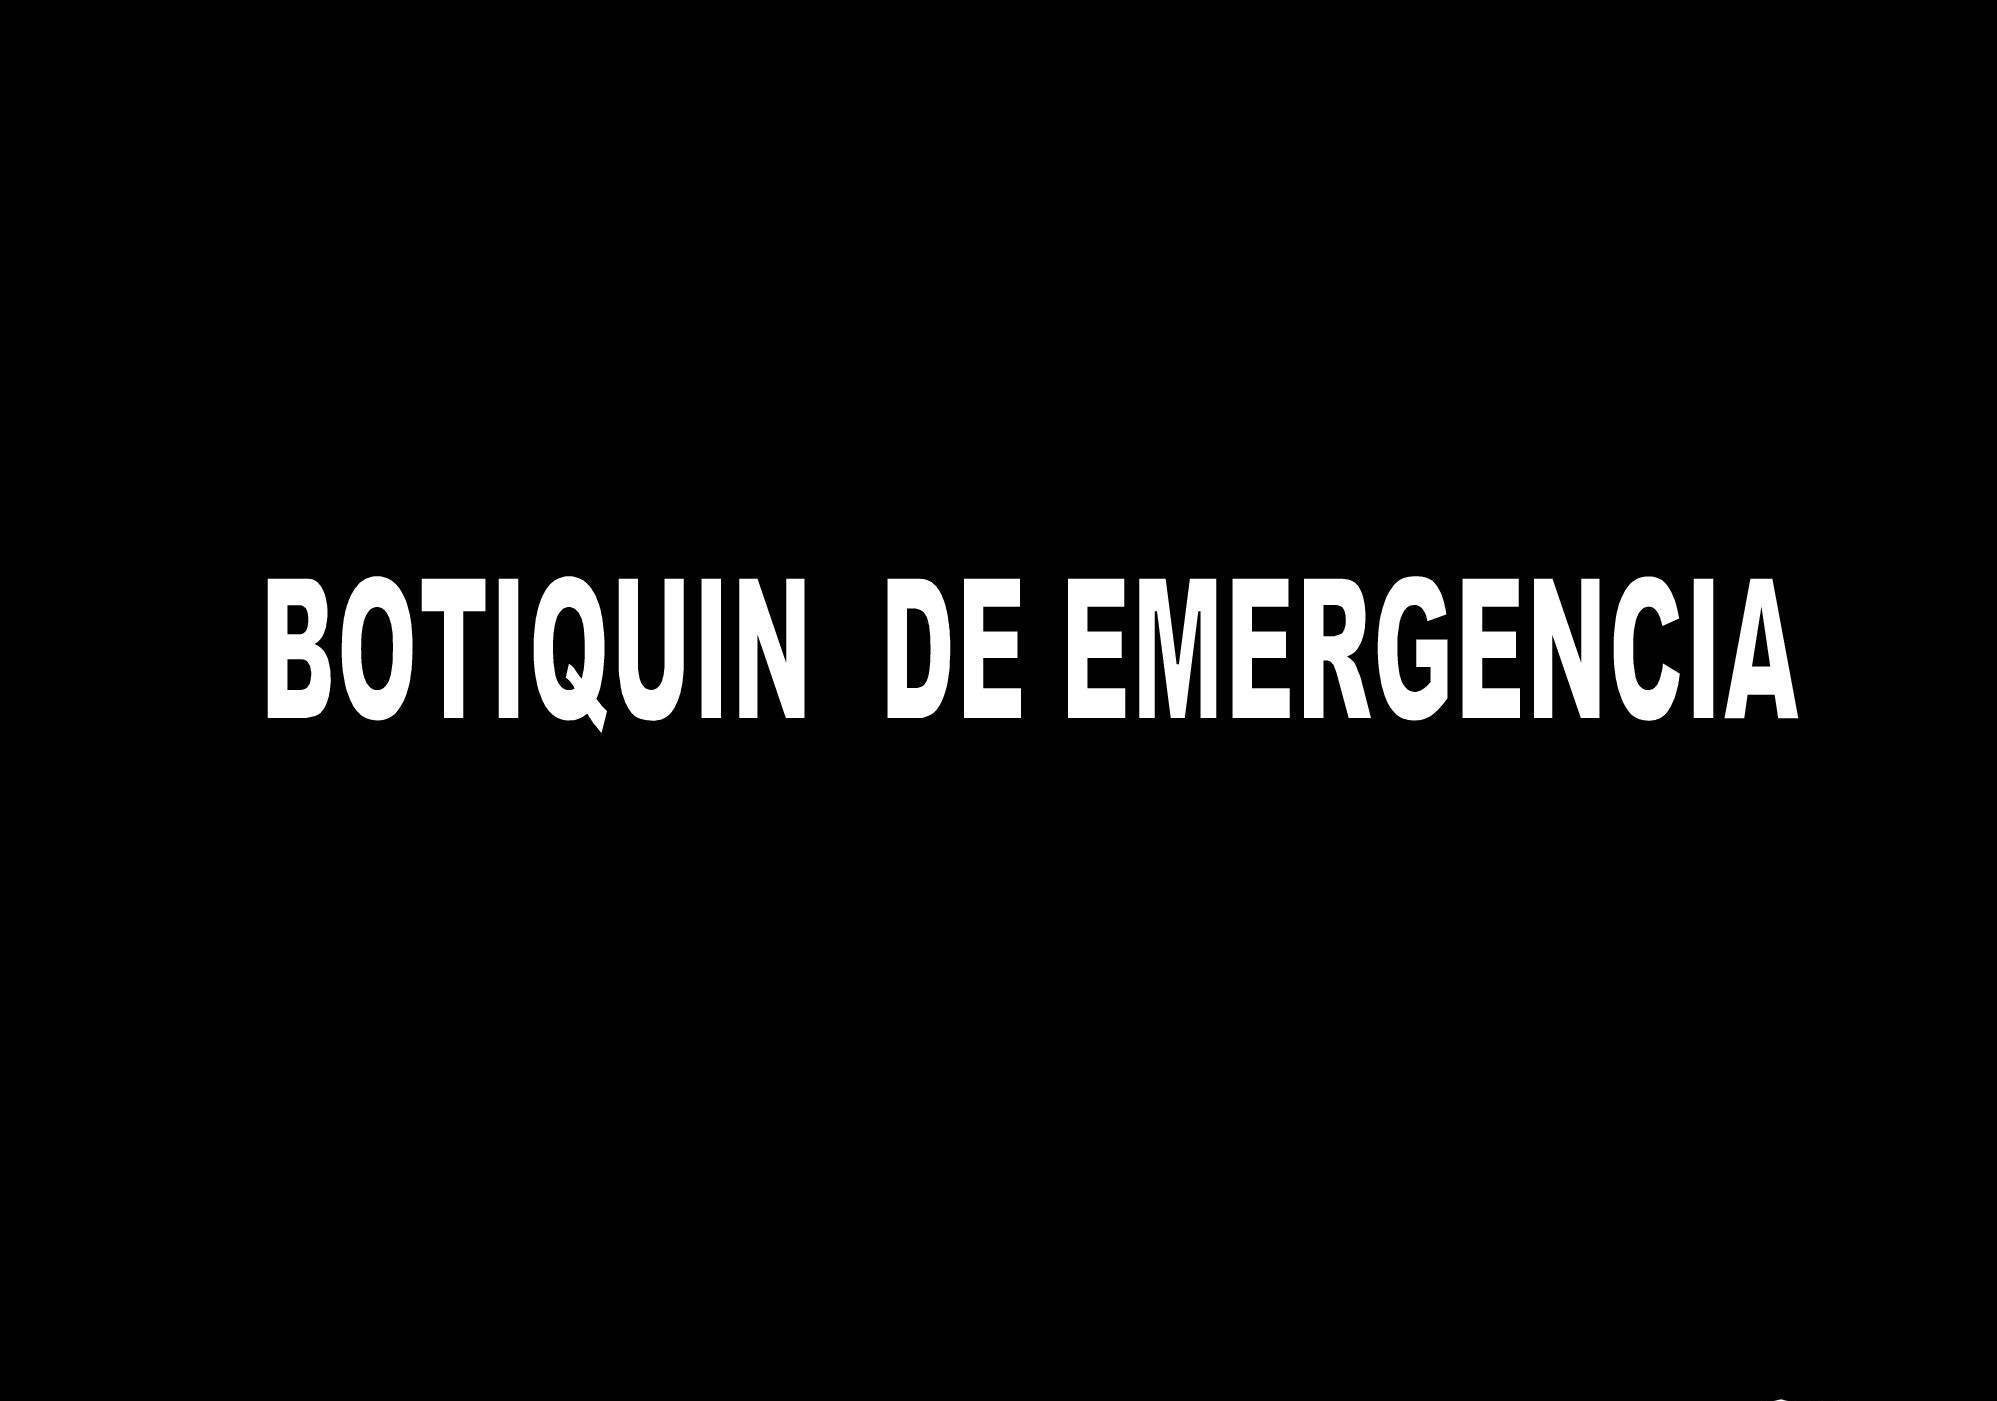 Botiquín de emergencias.